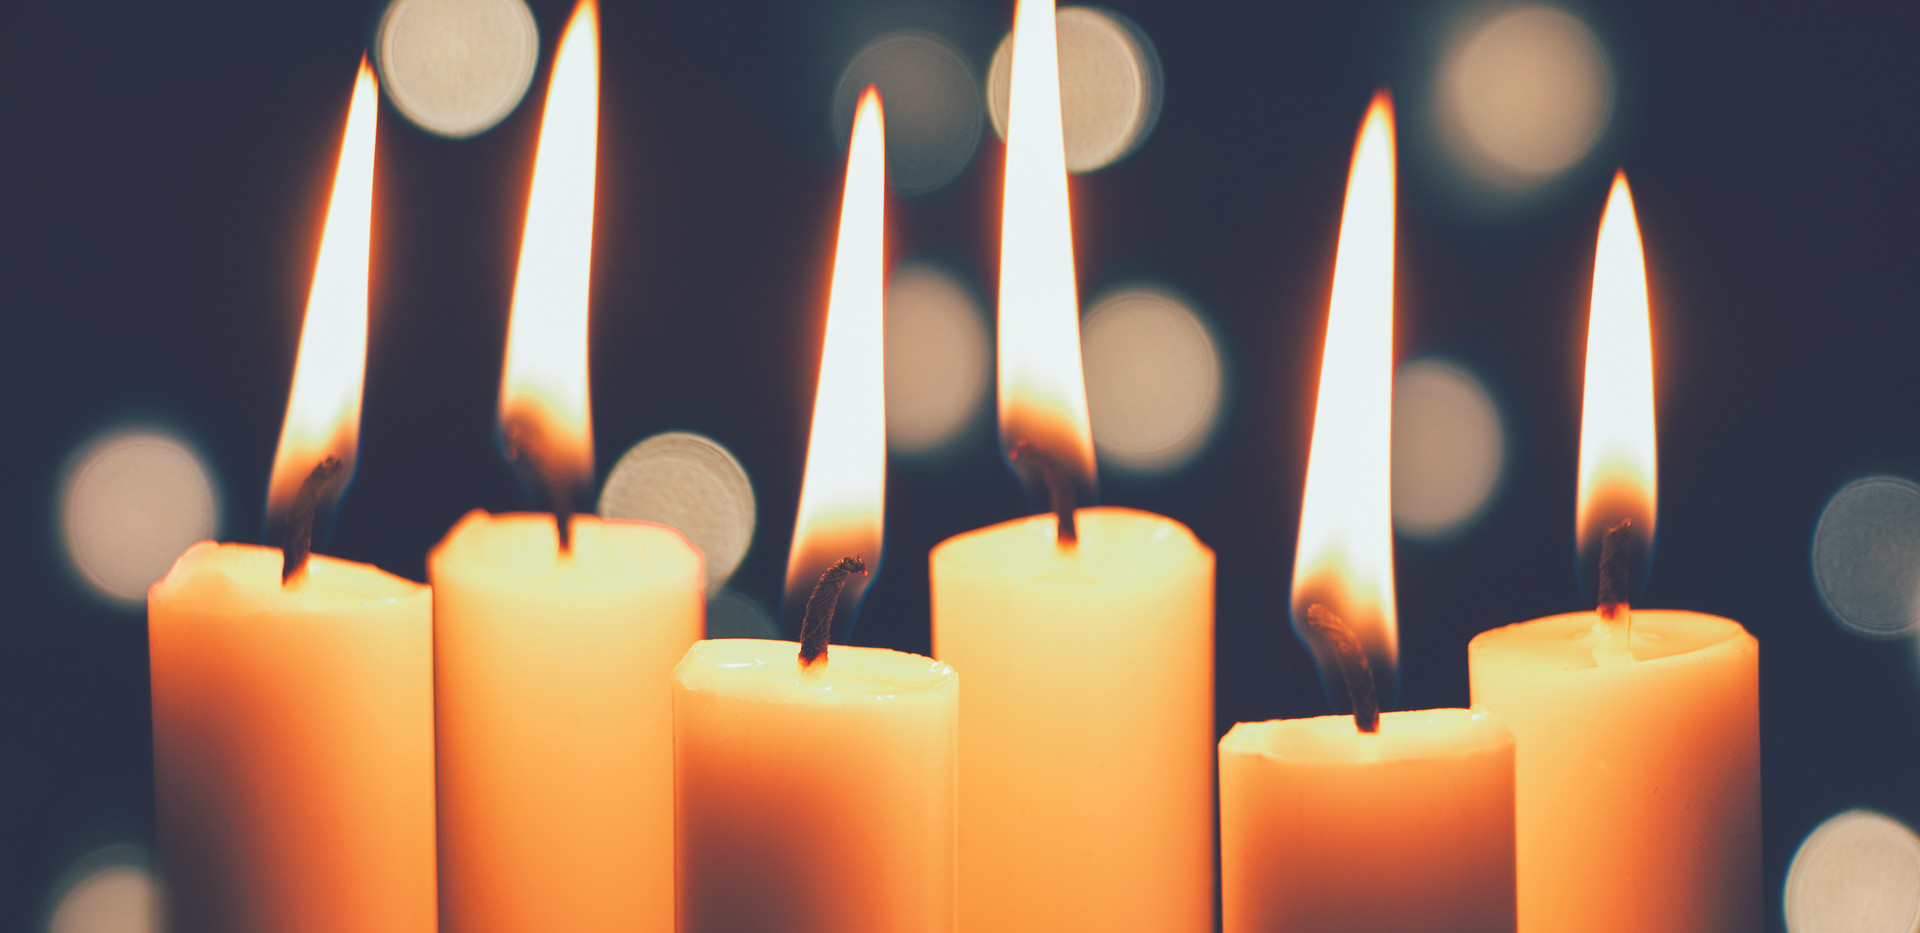 You are invited to a Candlelight Memorial